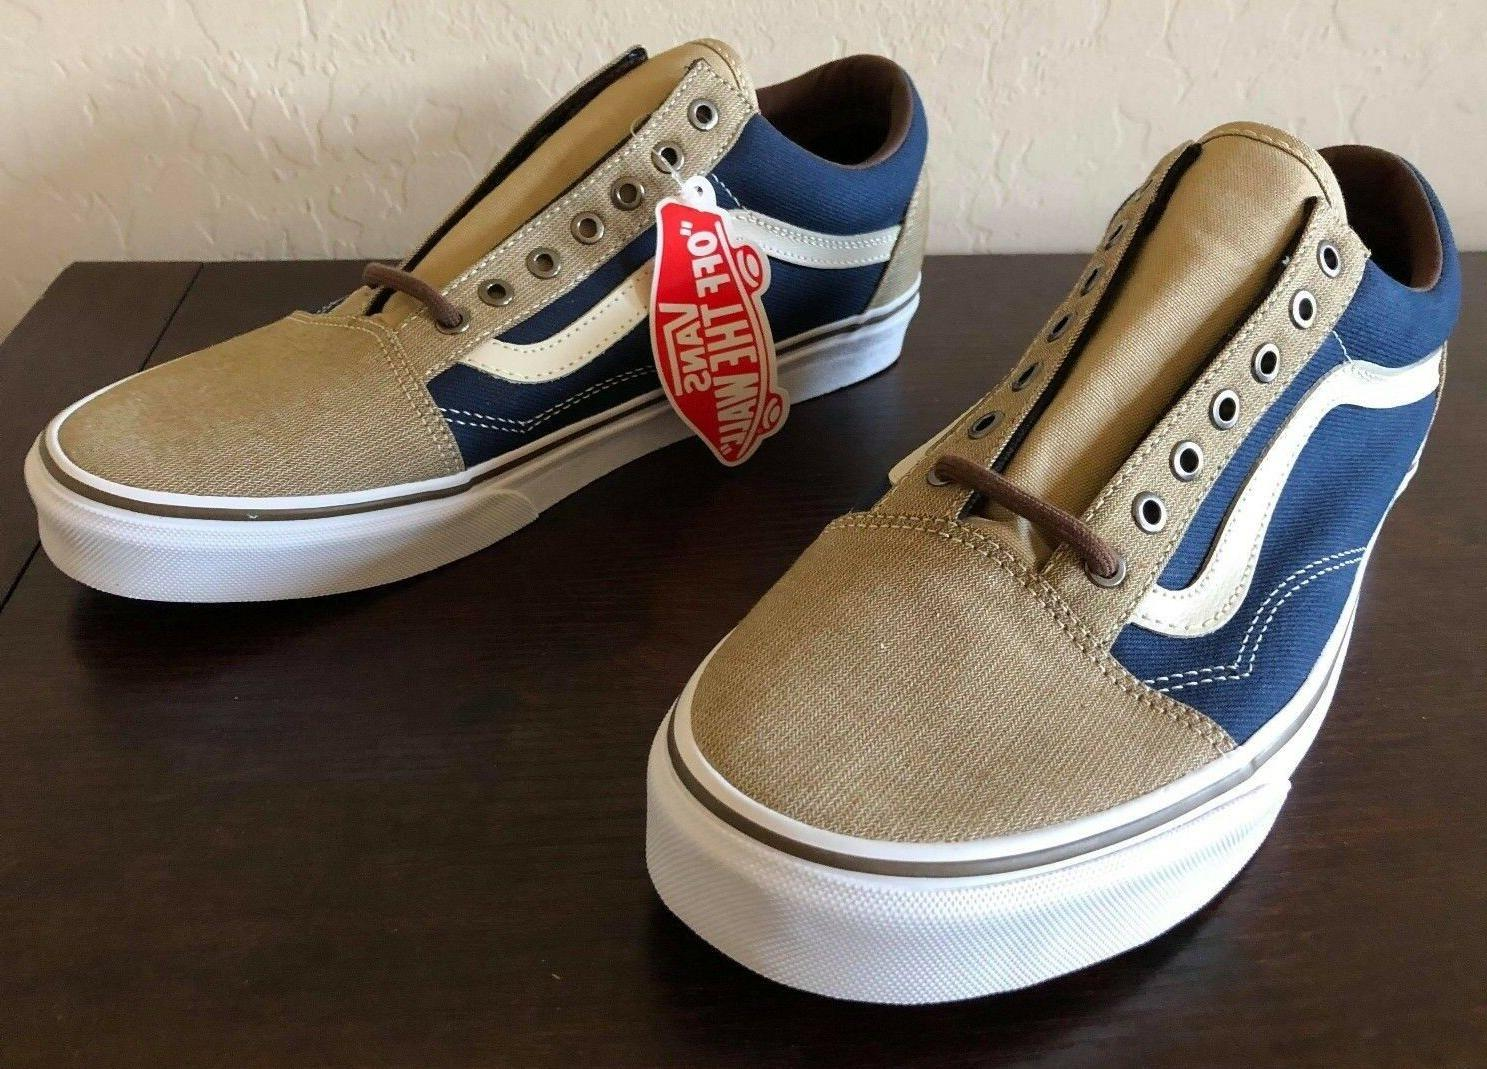 Vans OLD SKOOL CANVAS SKATE Shoes Size Men's 9.5 $65 DRESS B